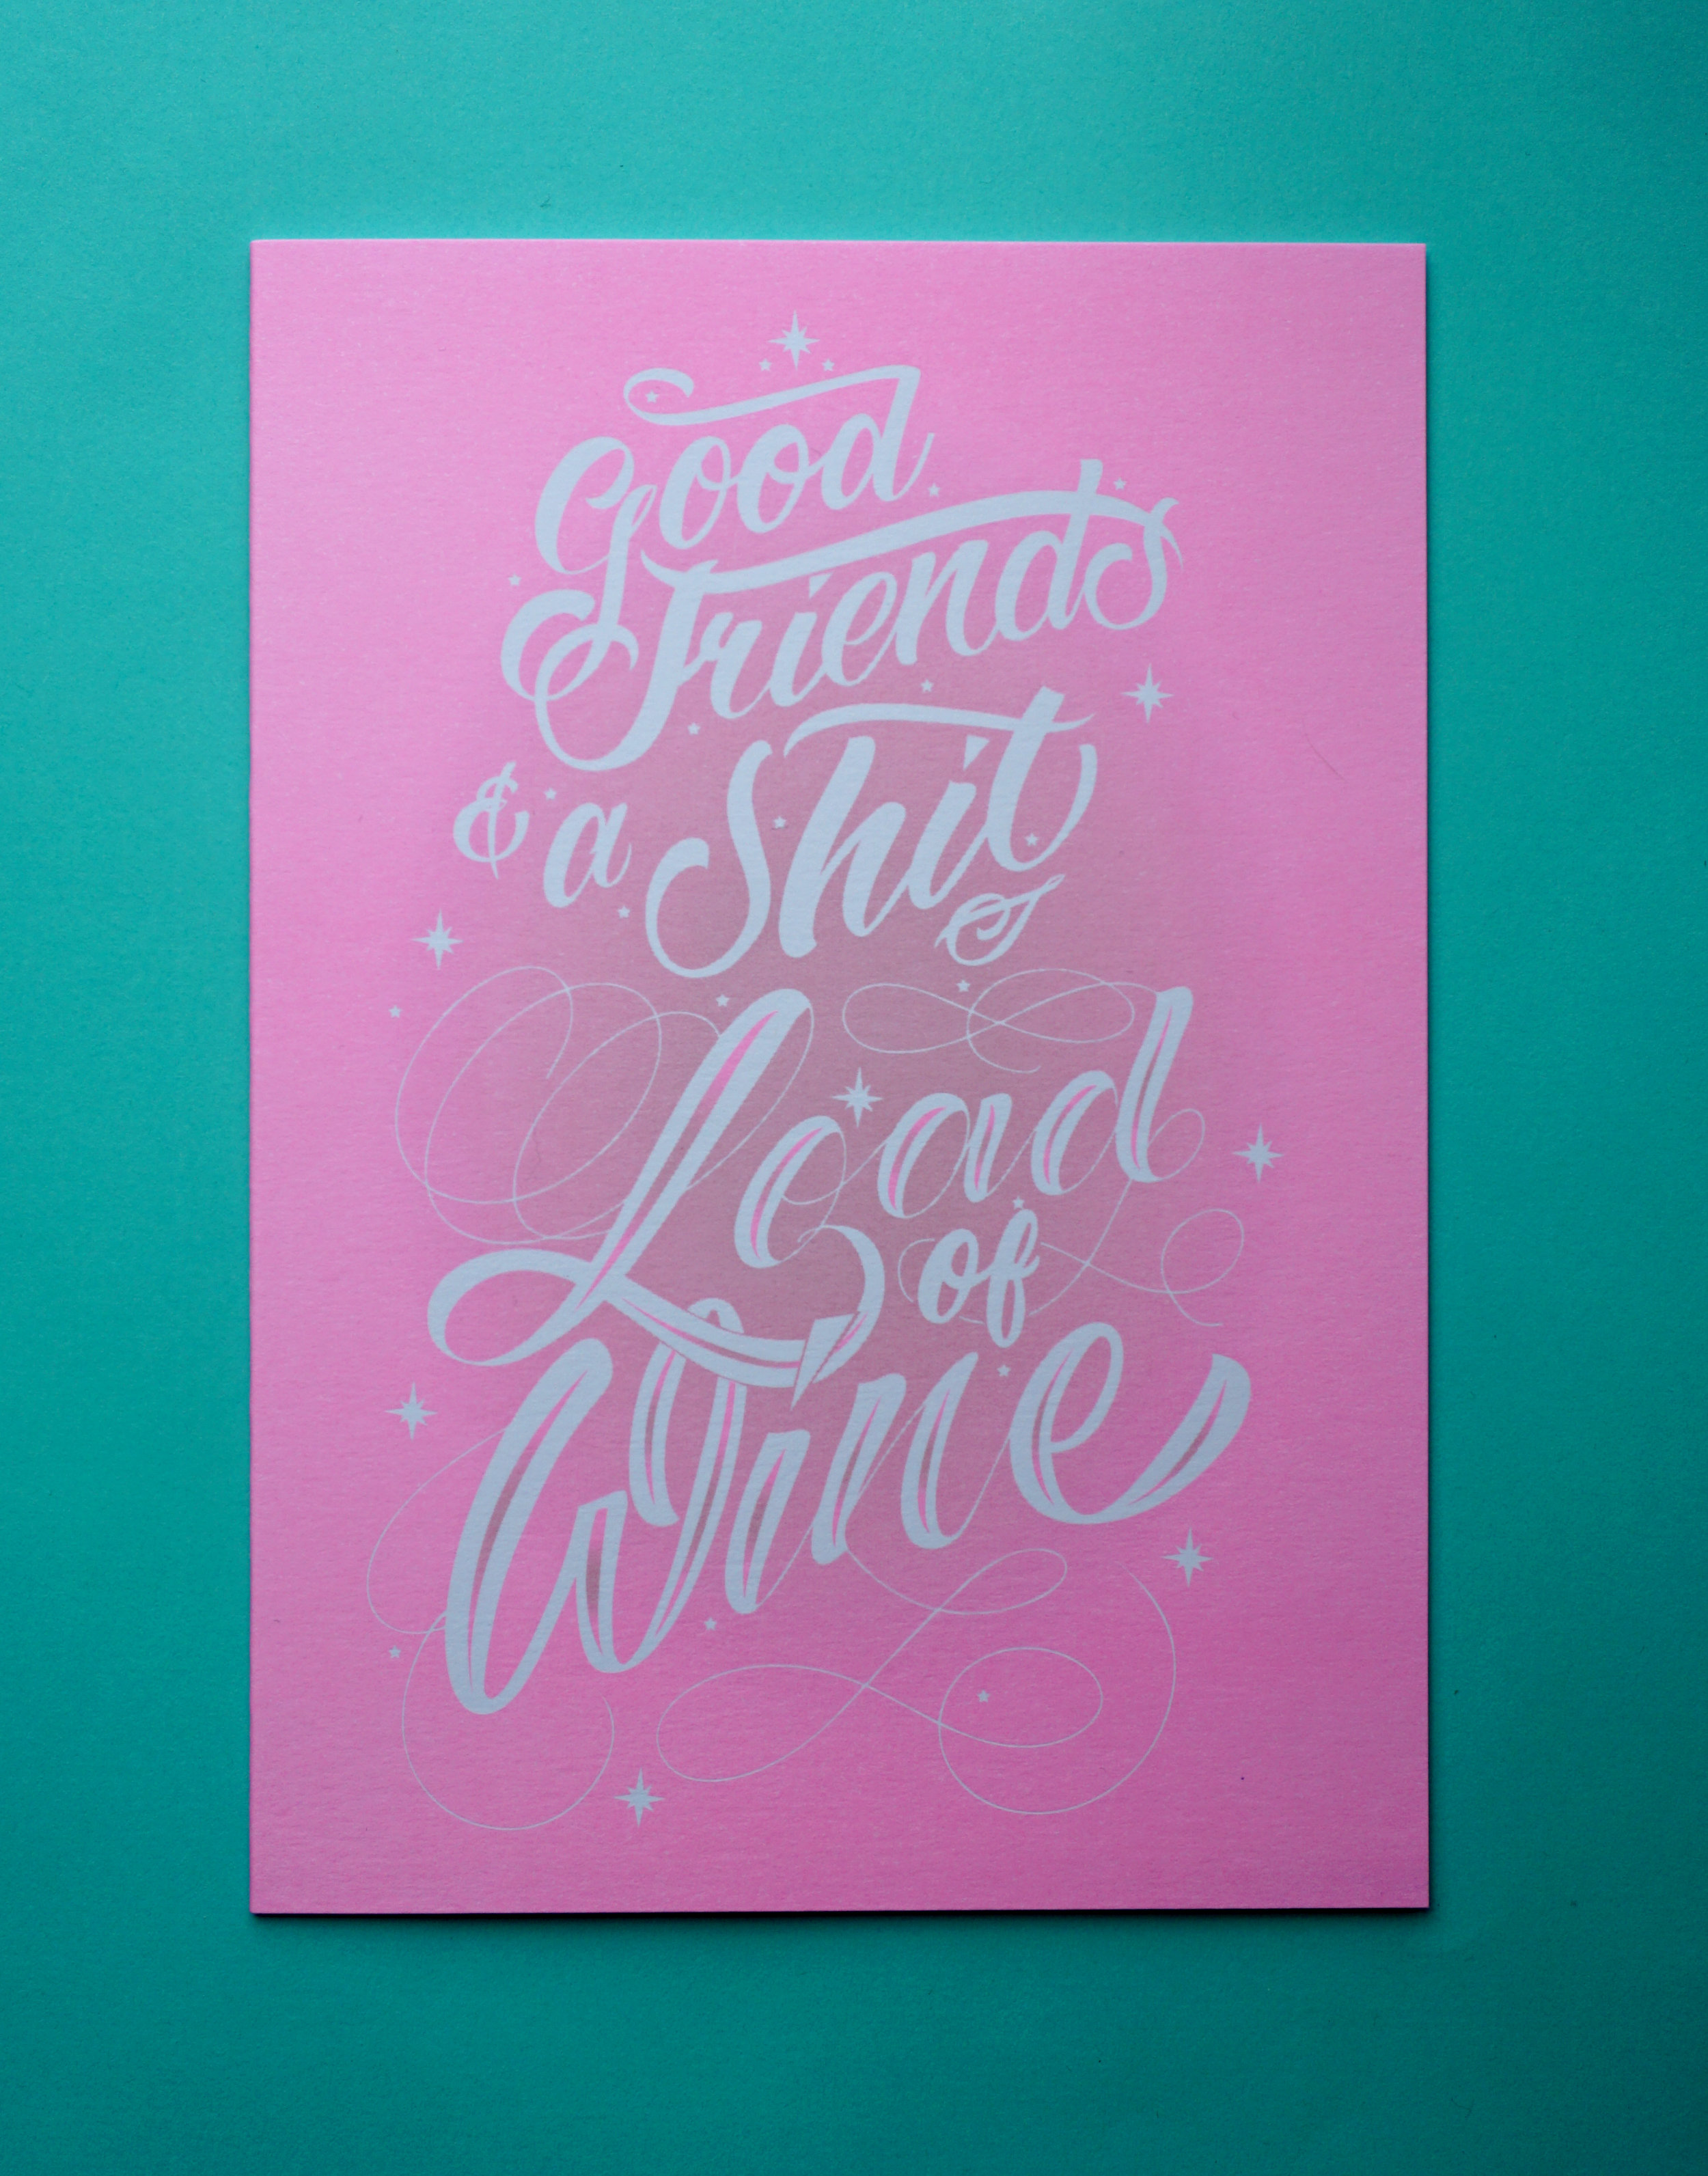 Lana-Hughes-Good-friends-and-a-shit-load-of-wine-scribbler-cards.JPG